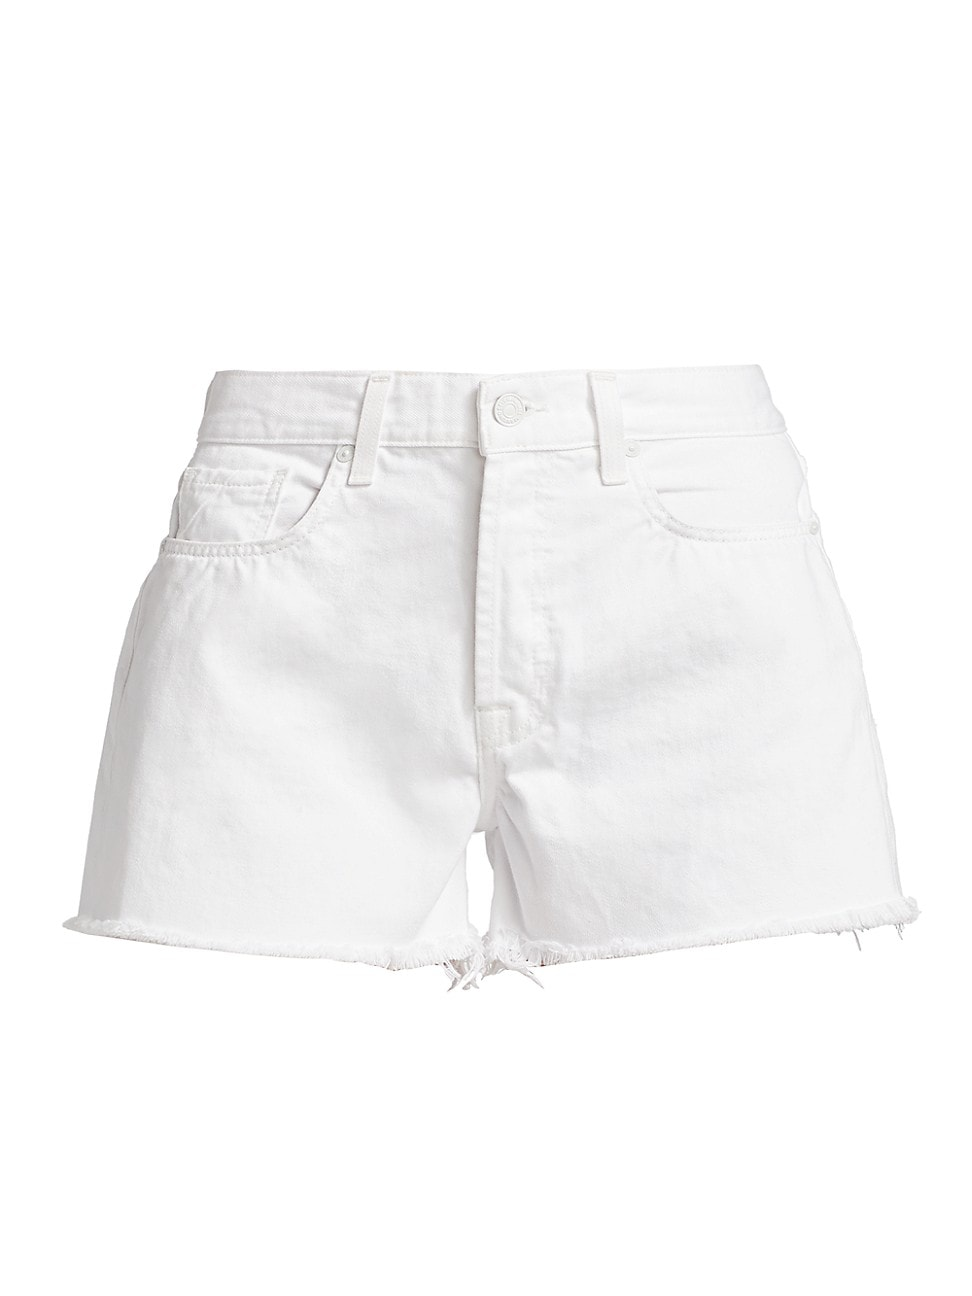 7 For All Mankind Shorts WOMEN'S MONROE CUT-OFF DENIM SHORTS